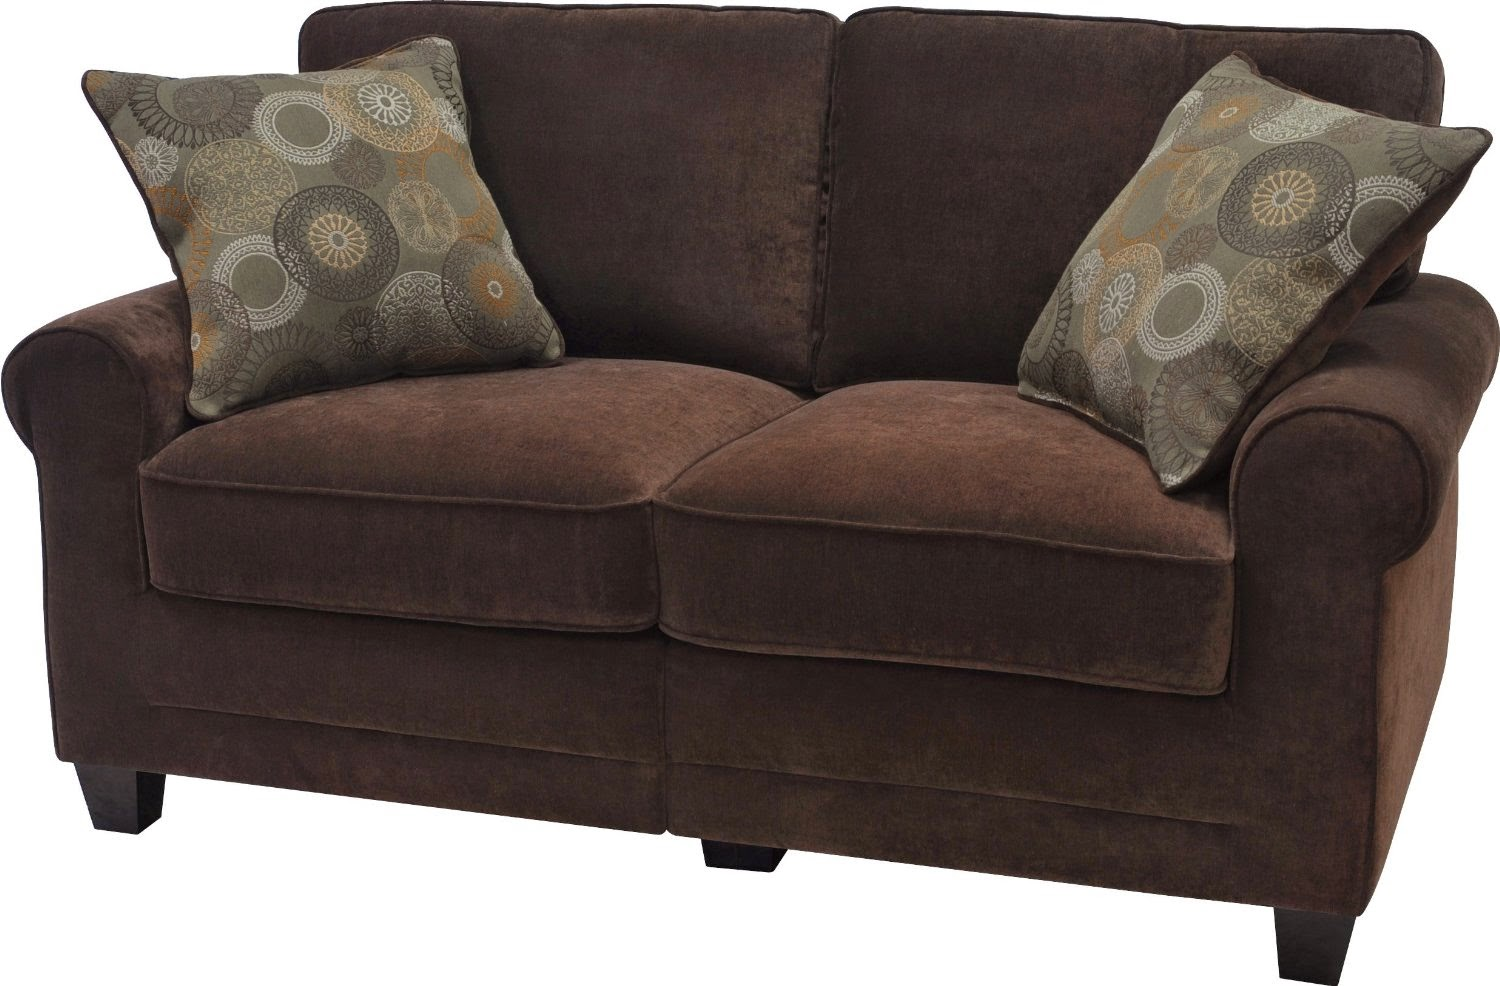 Serta Axis Convertible Storage Sofa With Usb Ports Home Decor